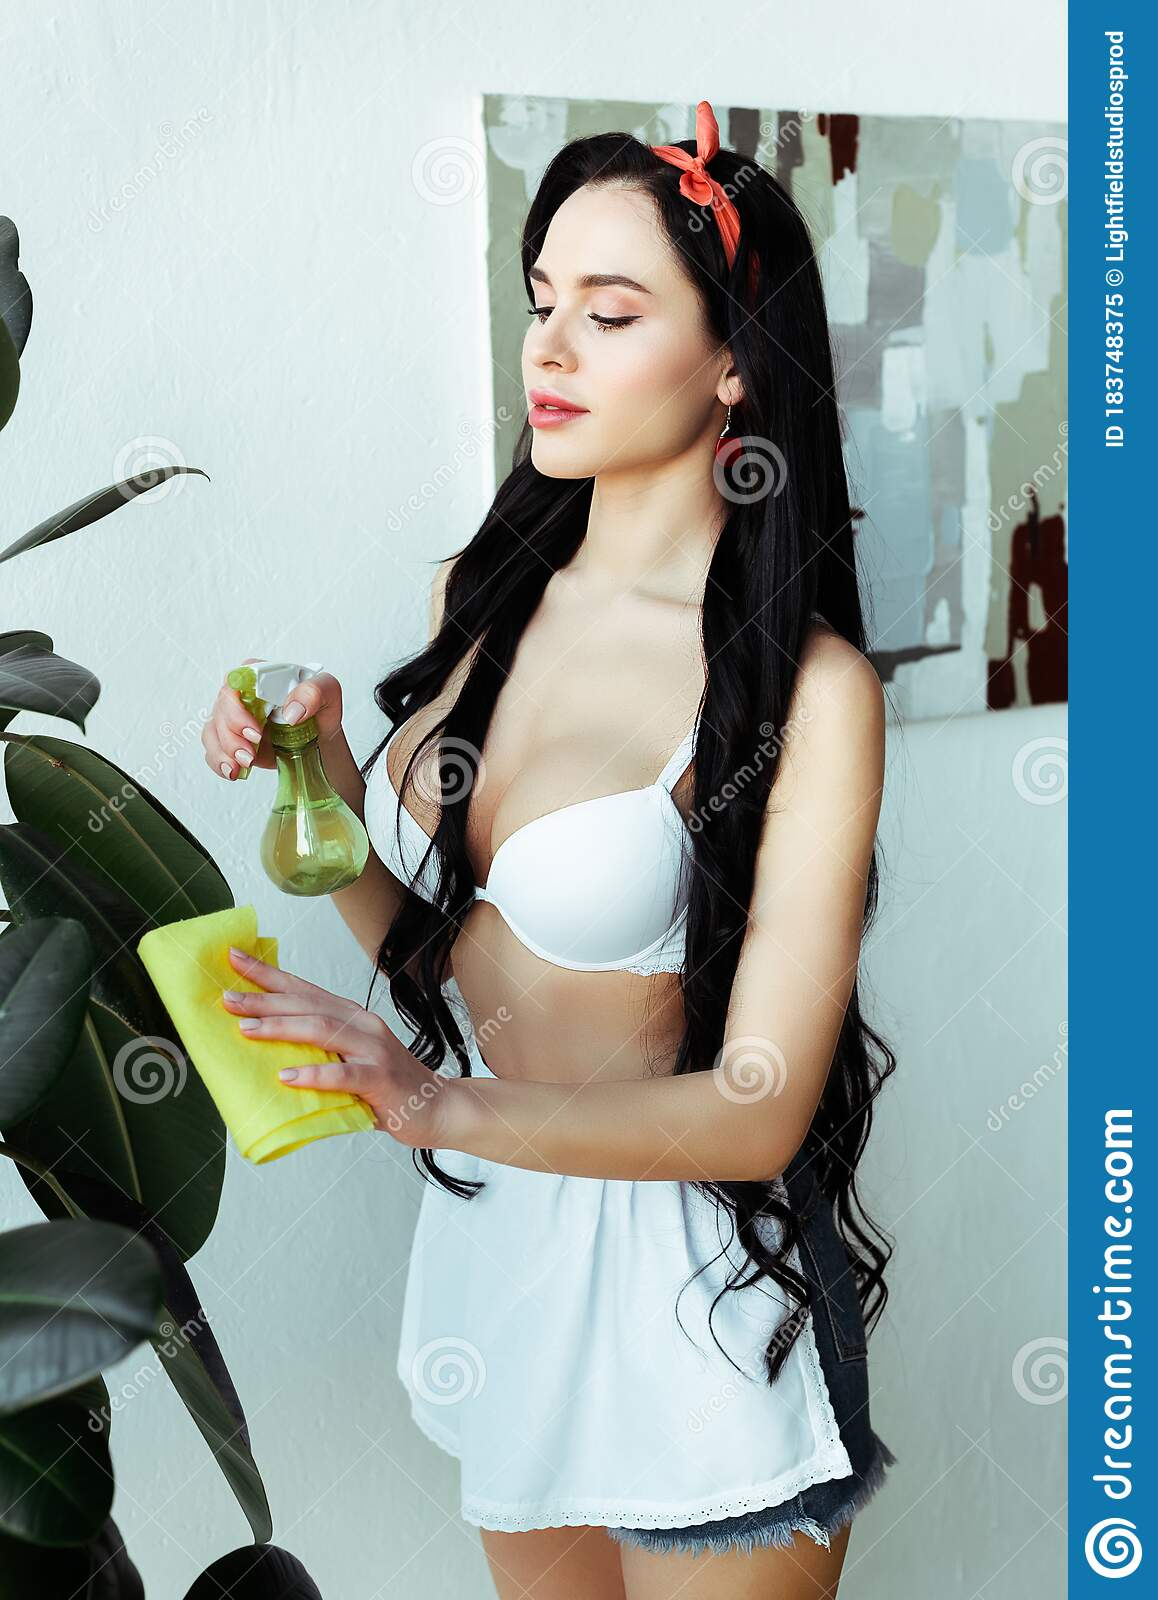 Hot girls in apron 125 Attractive Woman Sexy Apron Photos Free Royalty Free Stock Photos From Dreamstime